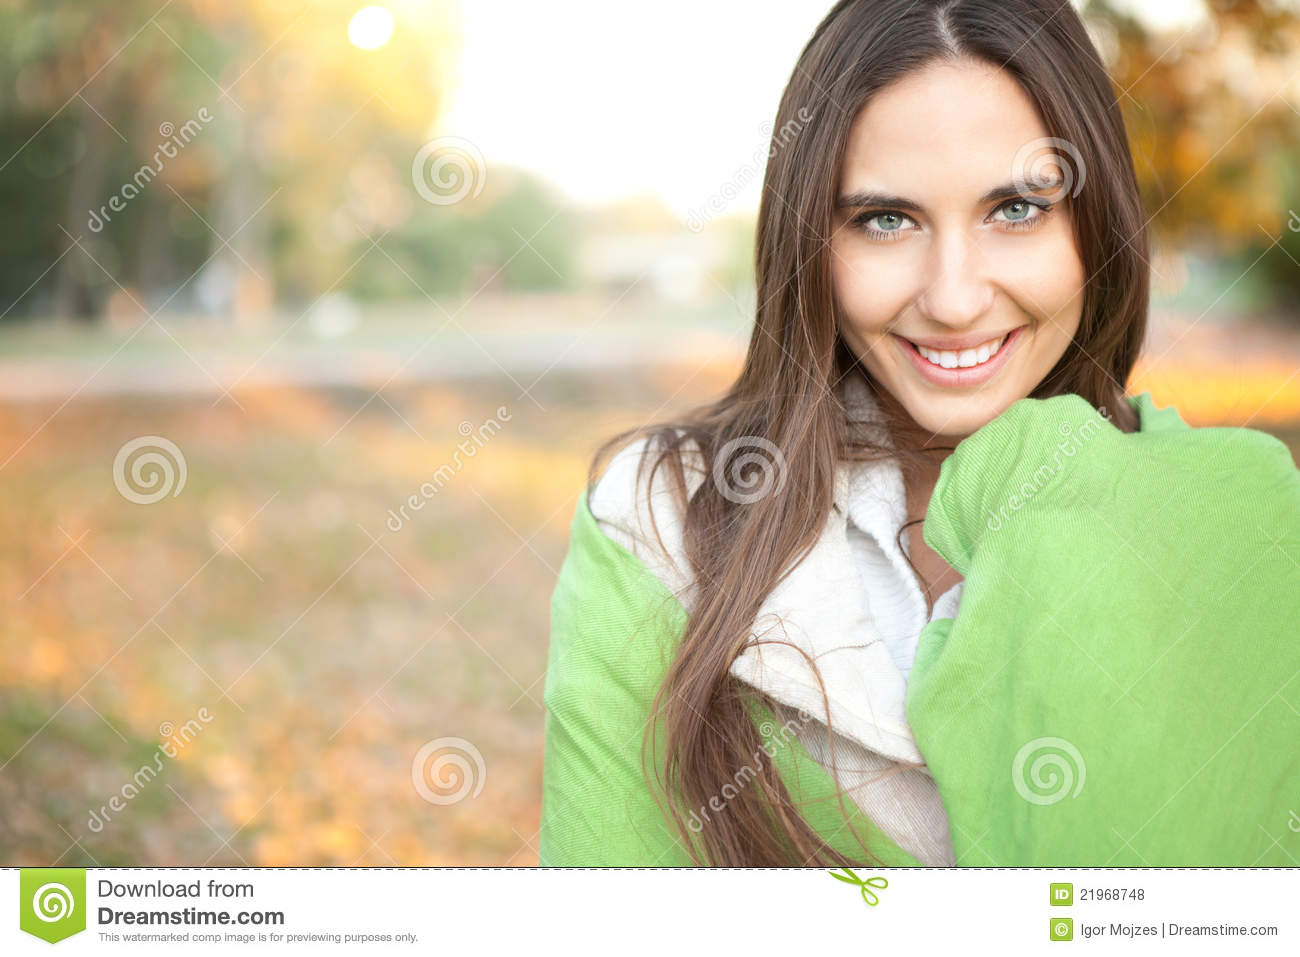 Cheerful woman in nature royalty free stock photos image for Cheerful nature